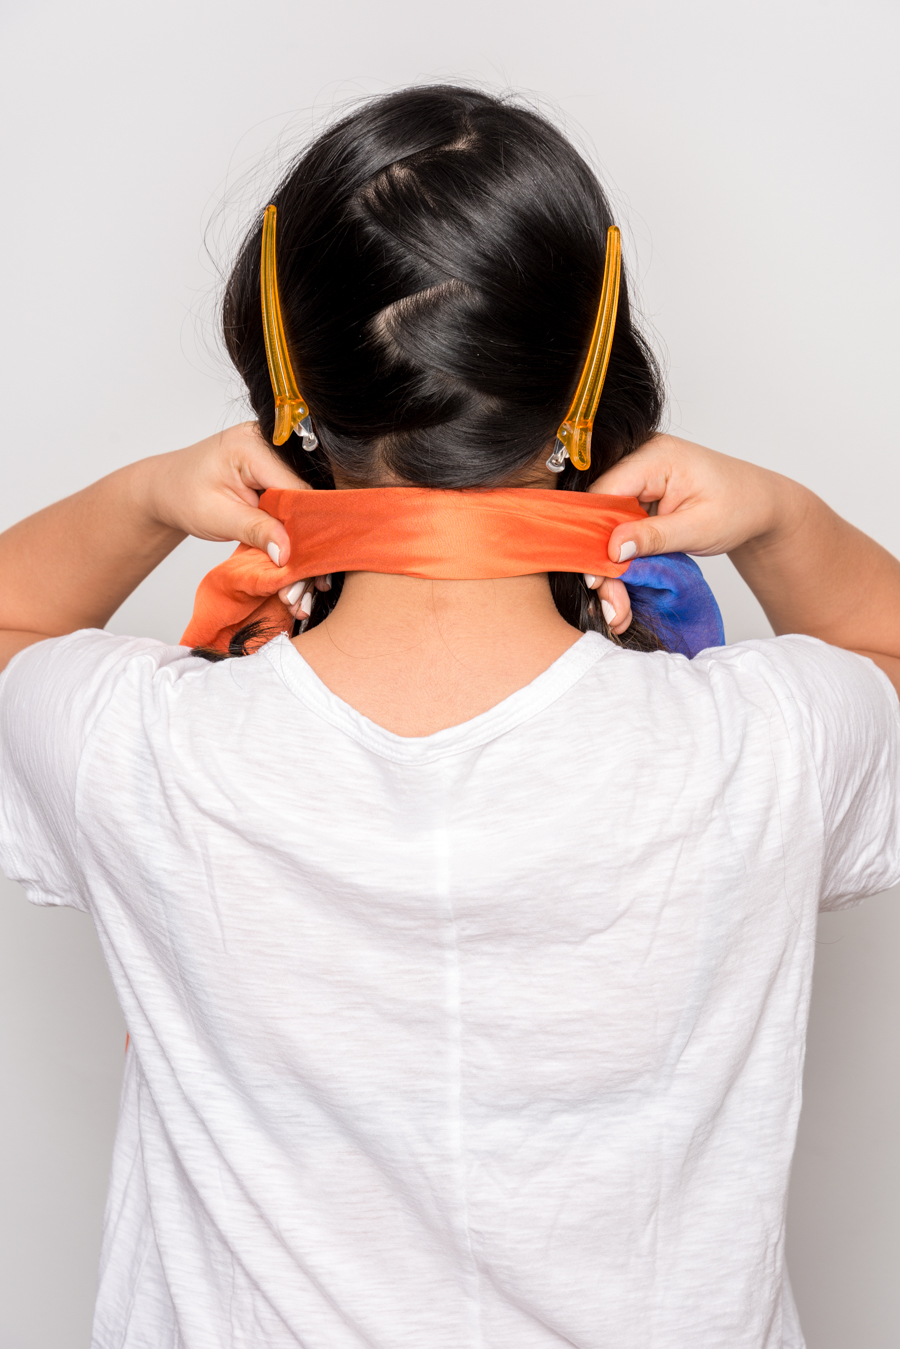 How To Use A Scarf For Stylish Summer Hair スカーフを使った簡単ヘアアレンジ 3